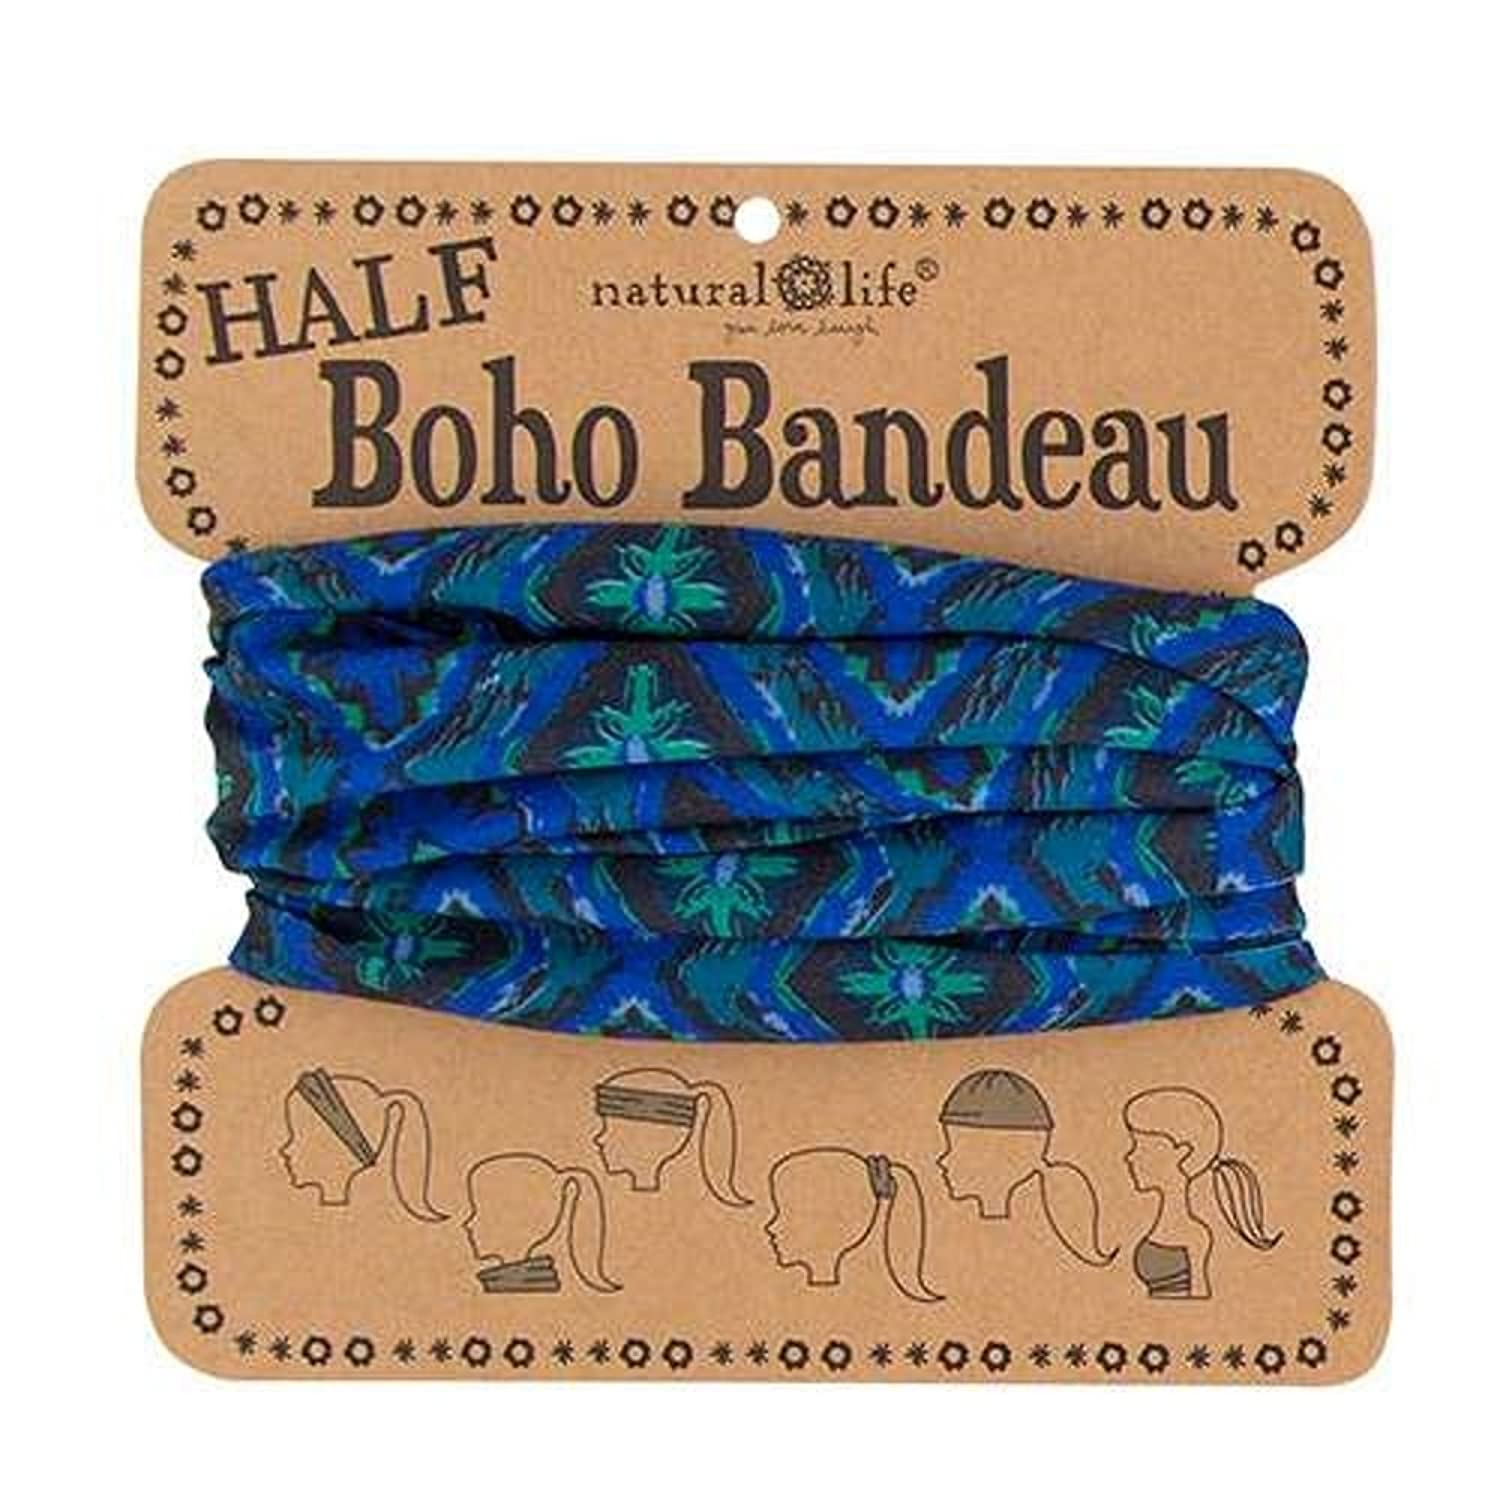 Natural Life Women's Half Boho Bandeau, Navy/Green, One Size